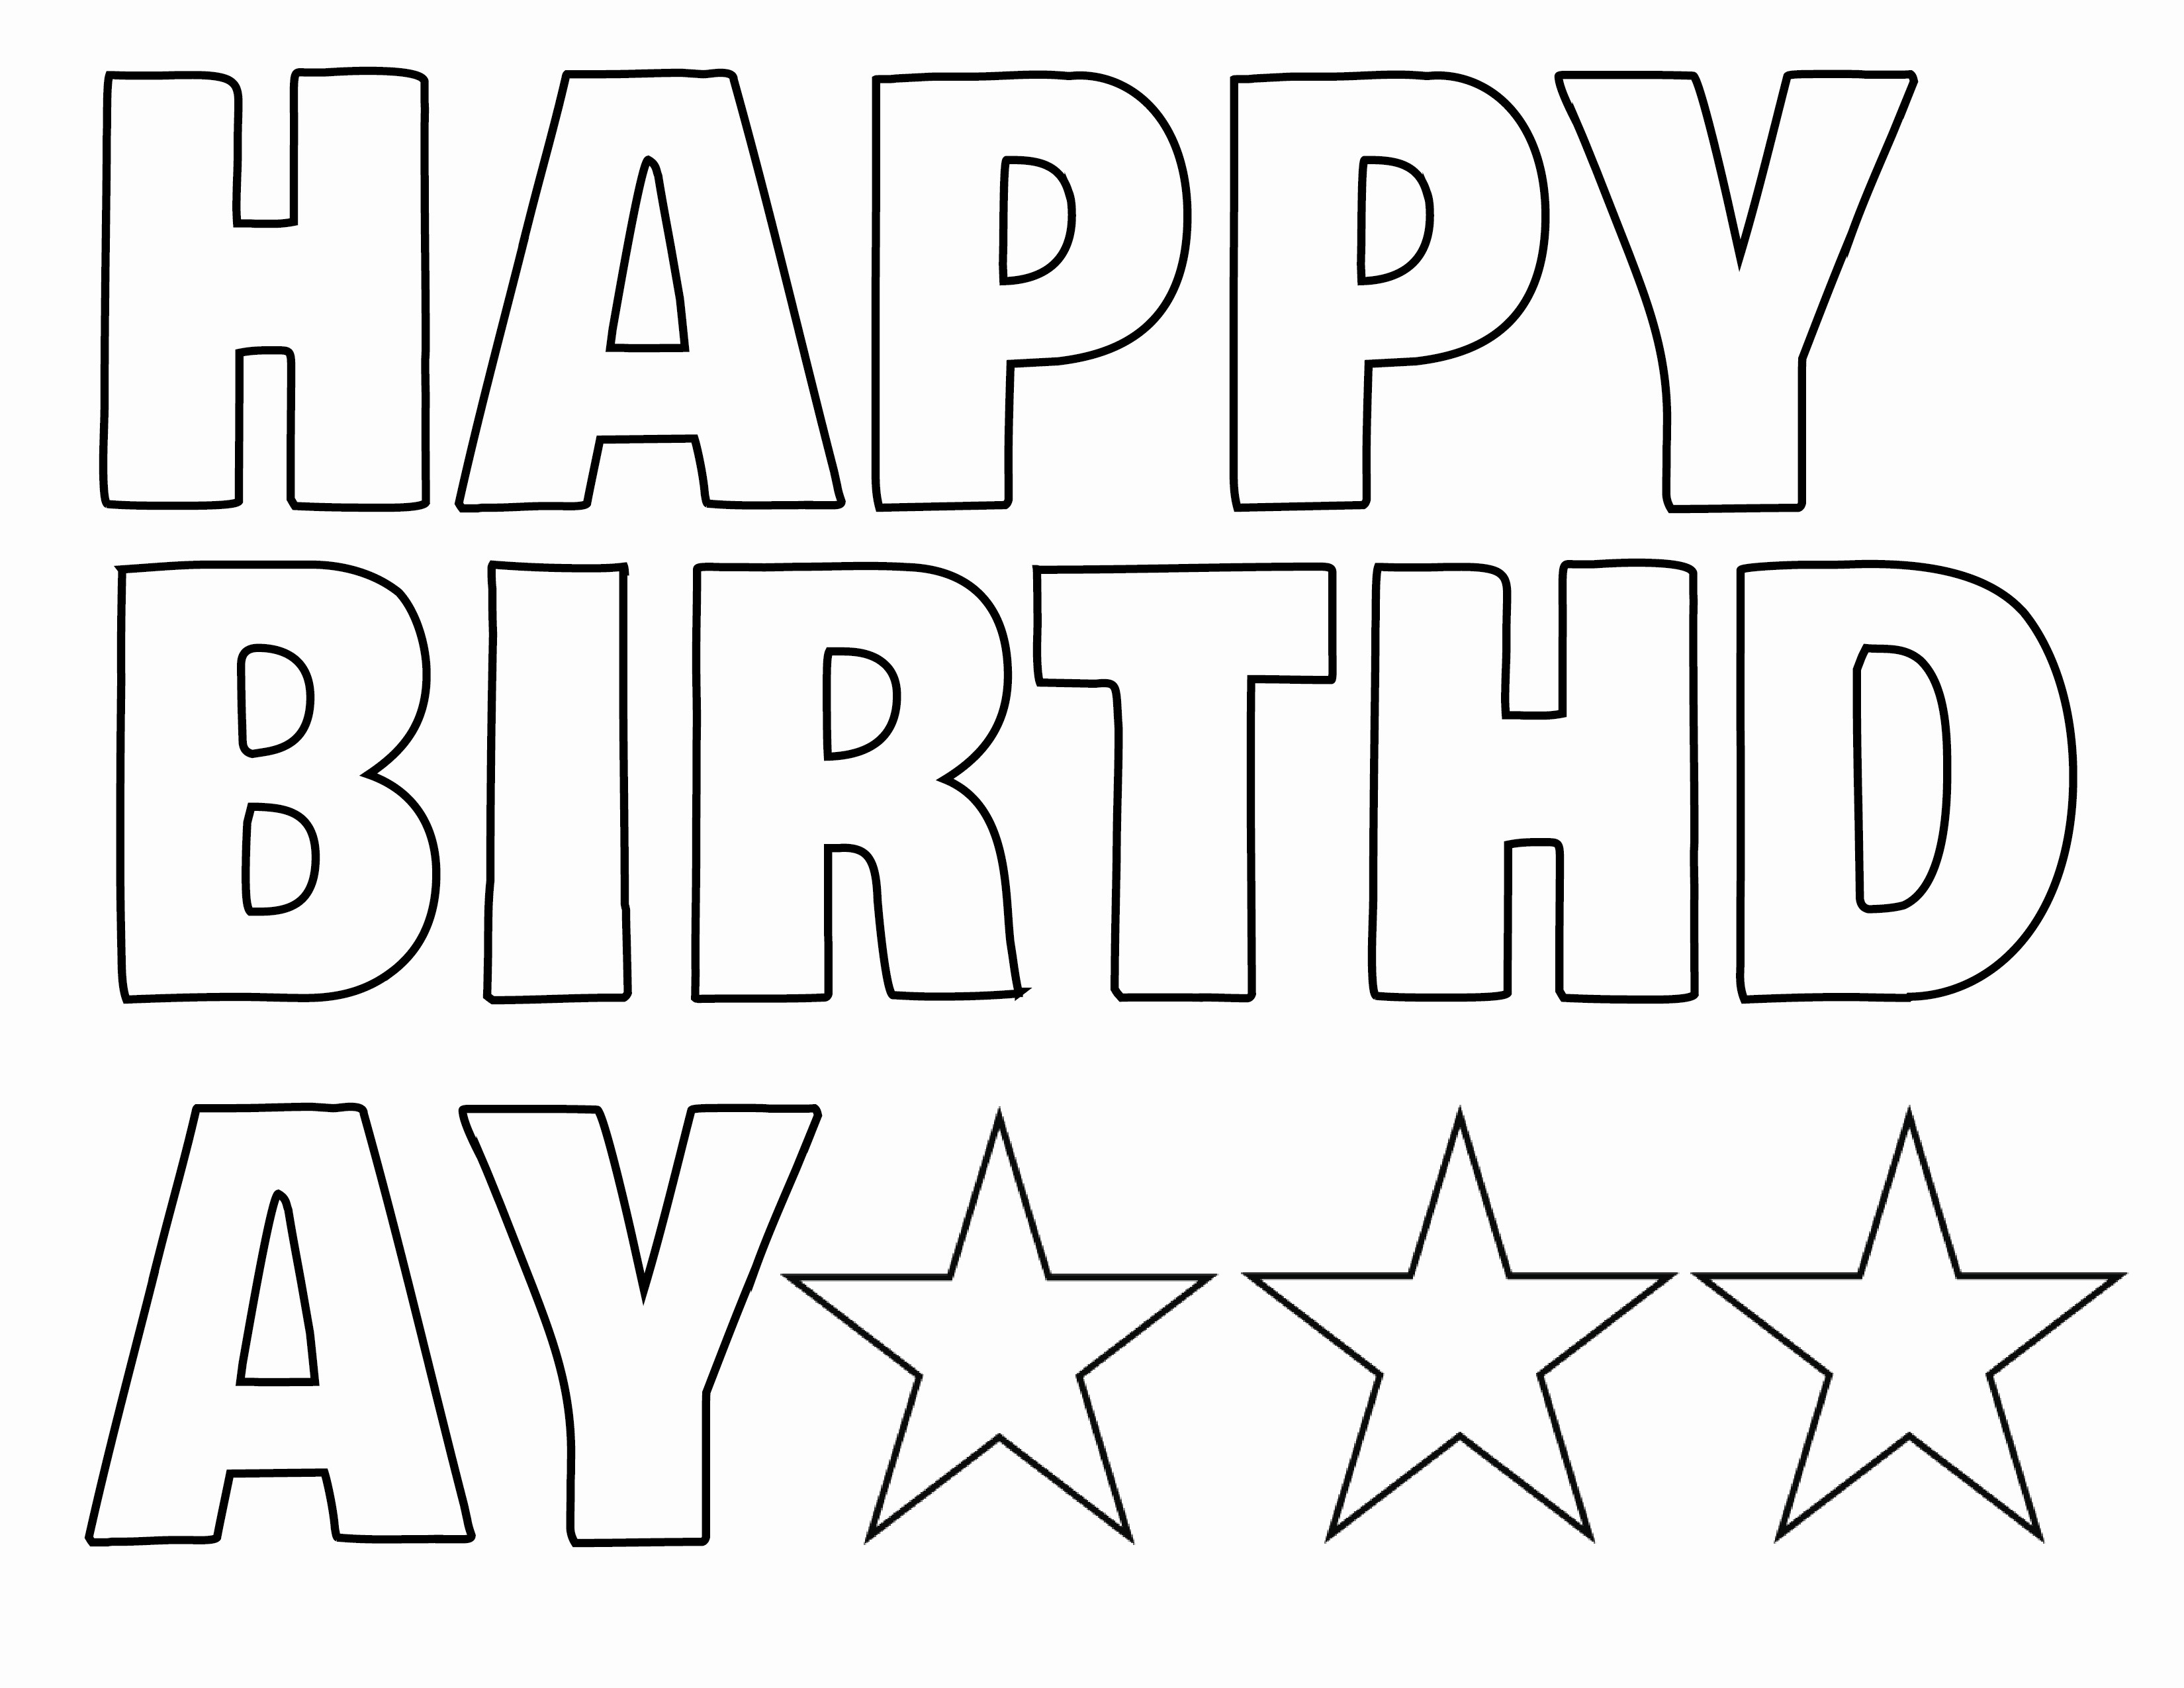 Happy Birthday Signs to Print Luxury Happy Birthday Letters to Print Printable 360 Degree